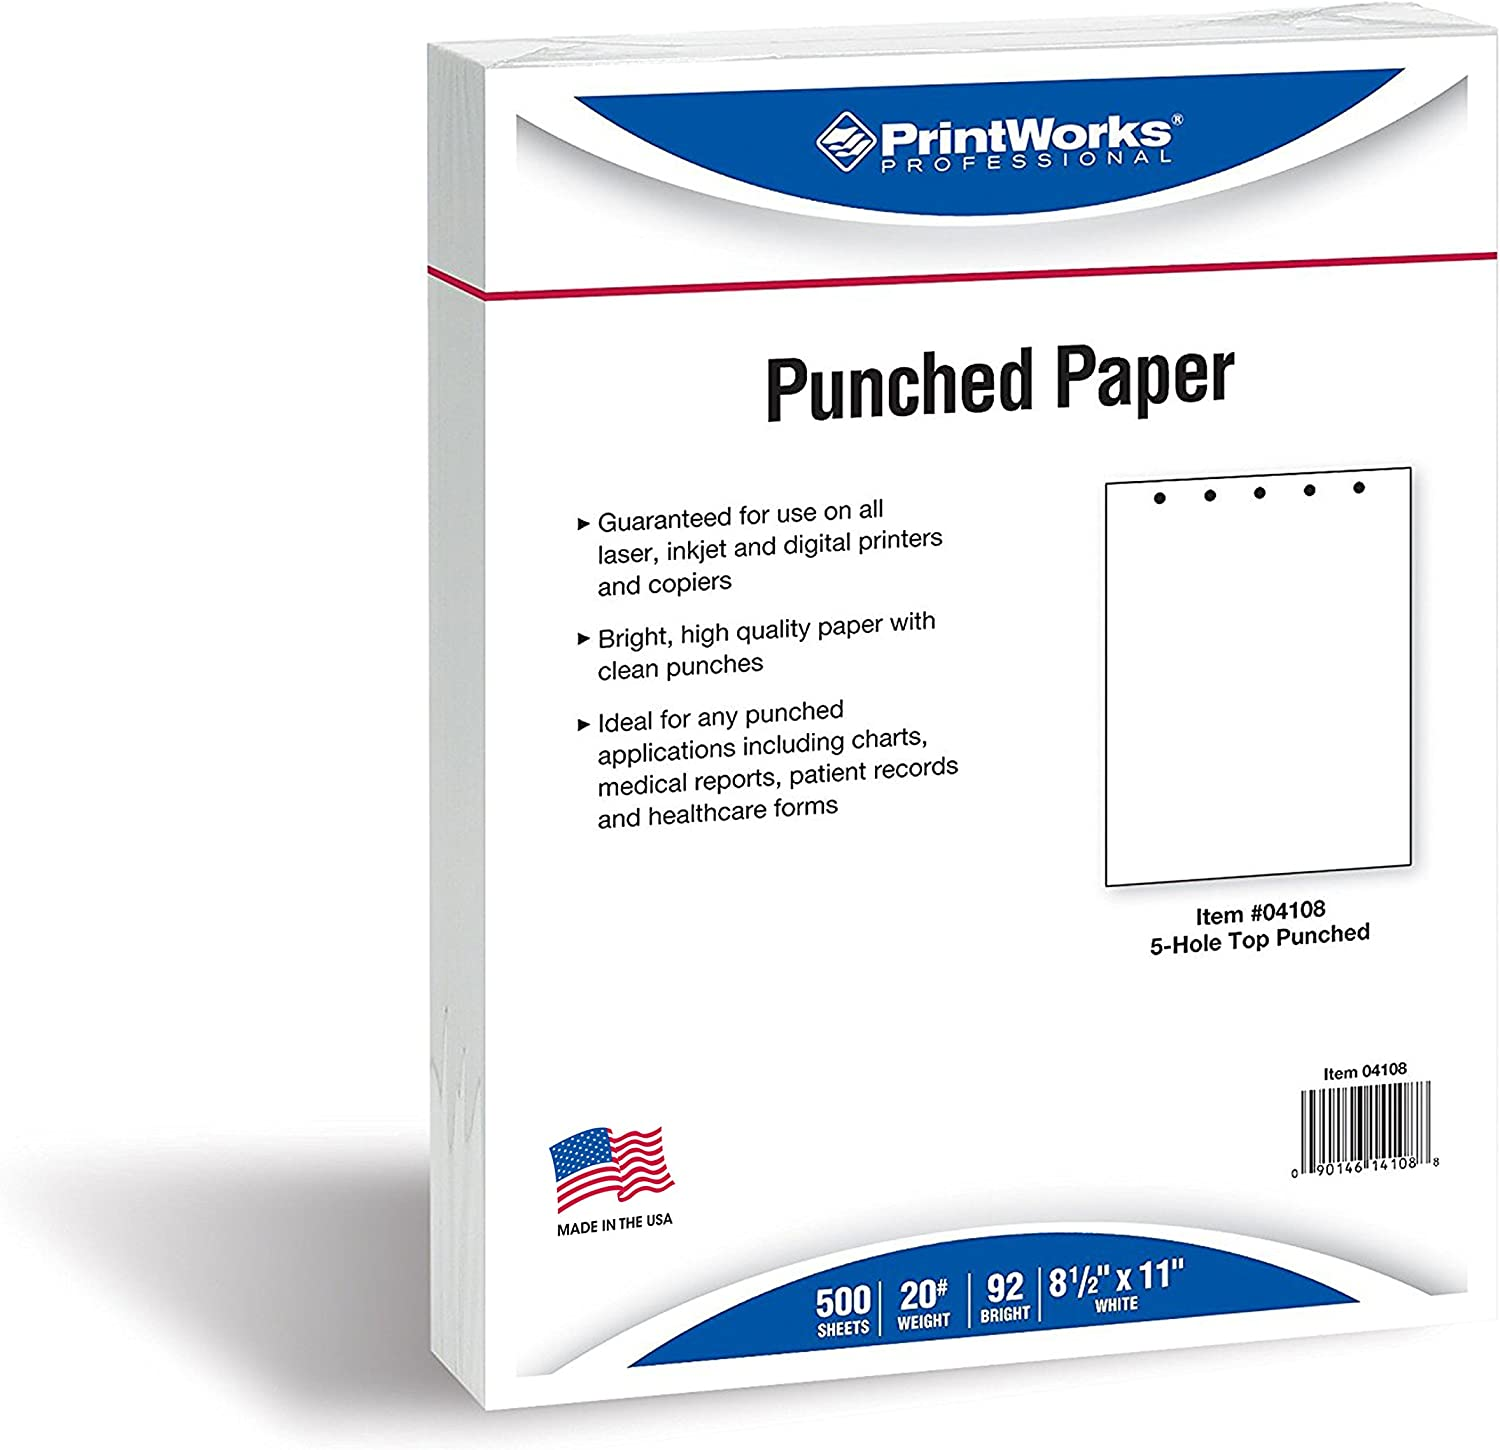 Printworks Professionelle Papier 5-Hole Top Punched weiß B0017D9MMQ | Internationale Wahl